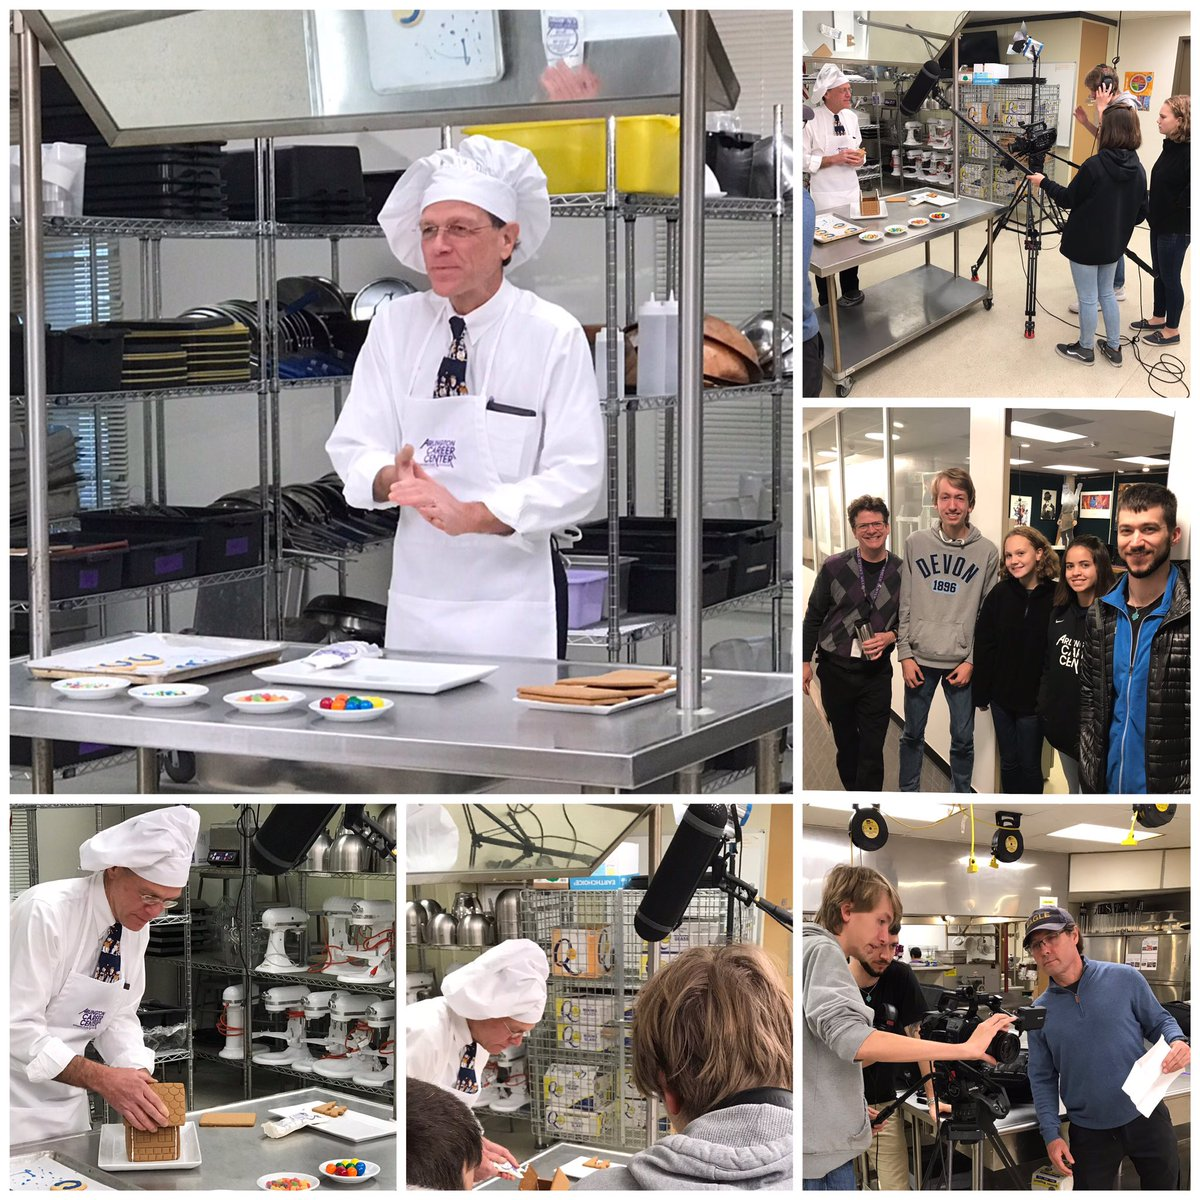 Arlington Tech TV students Seb, Lina, Ava and Jordan record Dr. Murphy's Holiday message in the Culinary Arts lab at the Career Center. Thanks to AETV's tech support and the acting skills of Patrick Henry students. <a target='_blank' href='http://twitter.com/arlingtontechcc'>@arlingtontechcc</a> <a target='_blank' href='http://twitter.com/CharlesRandolp3'>@CharlesRandolp3</a> <a target='_blank' href='http://twitter.com/APSVirginia'>@APSVirginia</a> <a target='_blank' href='http://twitter.com/Margaretchungcc'>@Margaretchungcc</a> <a target='_blank' href='https://t.co/kBwXOM4yI5'>https://t.co/kBwXOM4yI5</a>